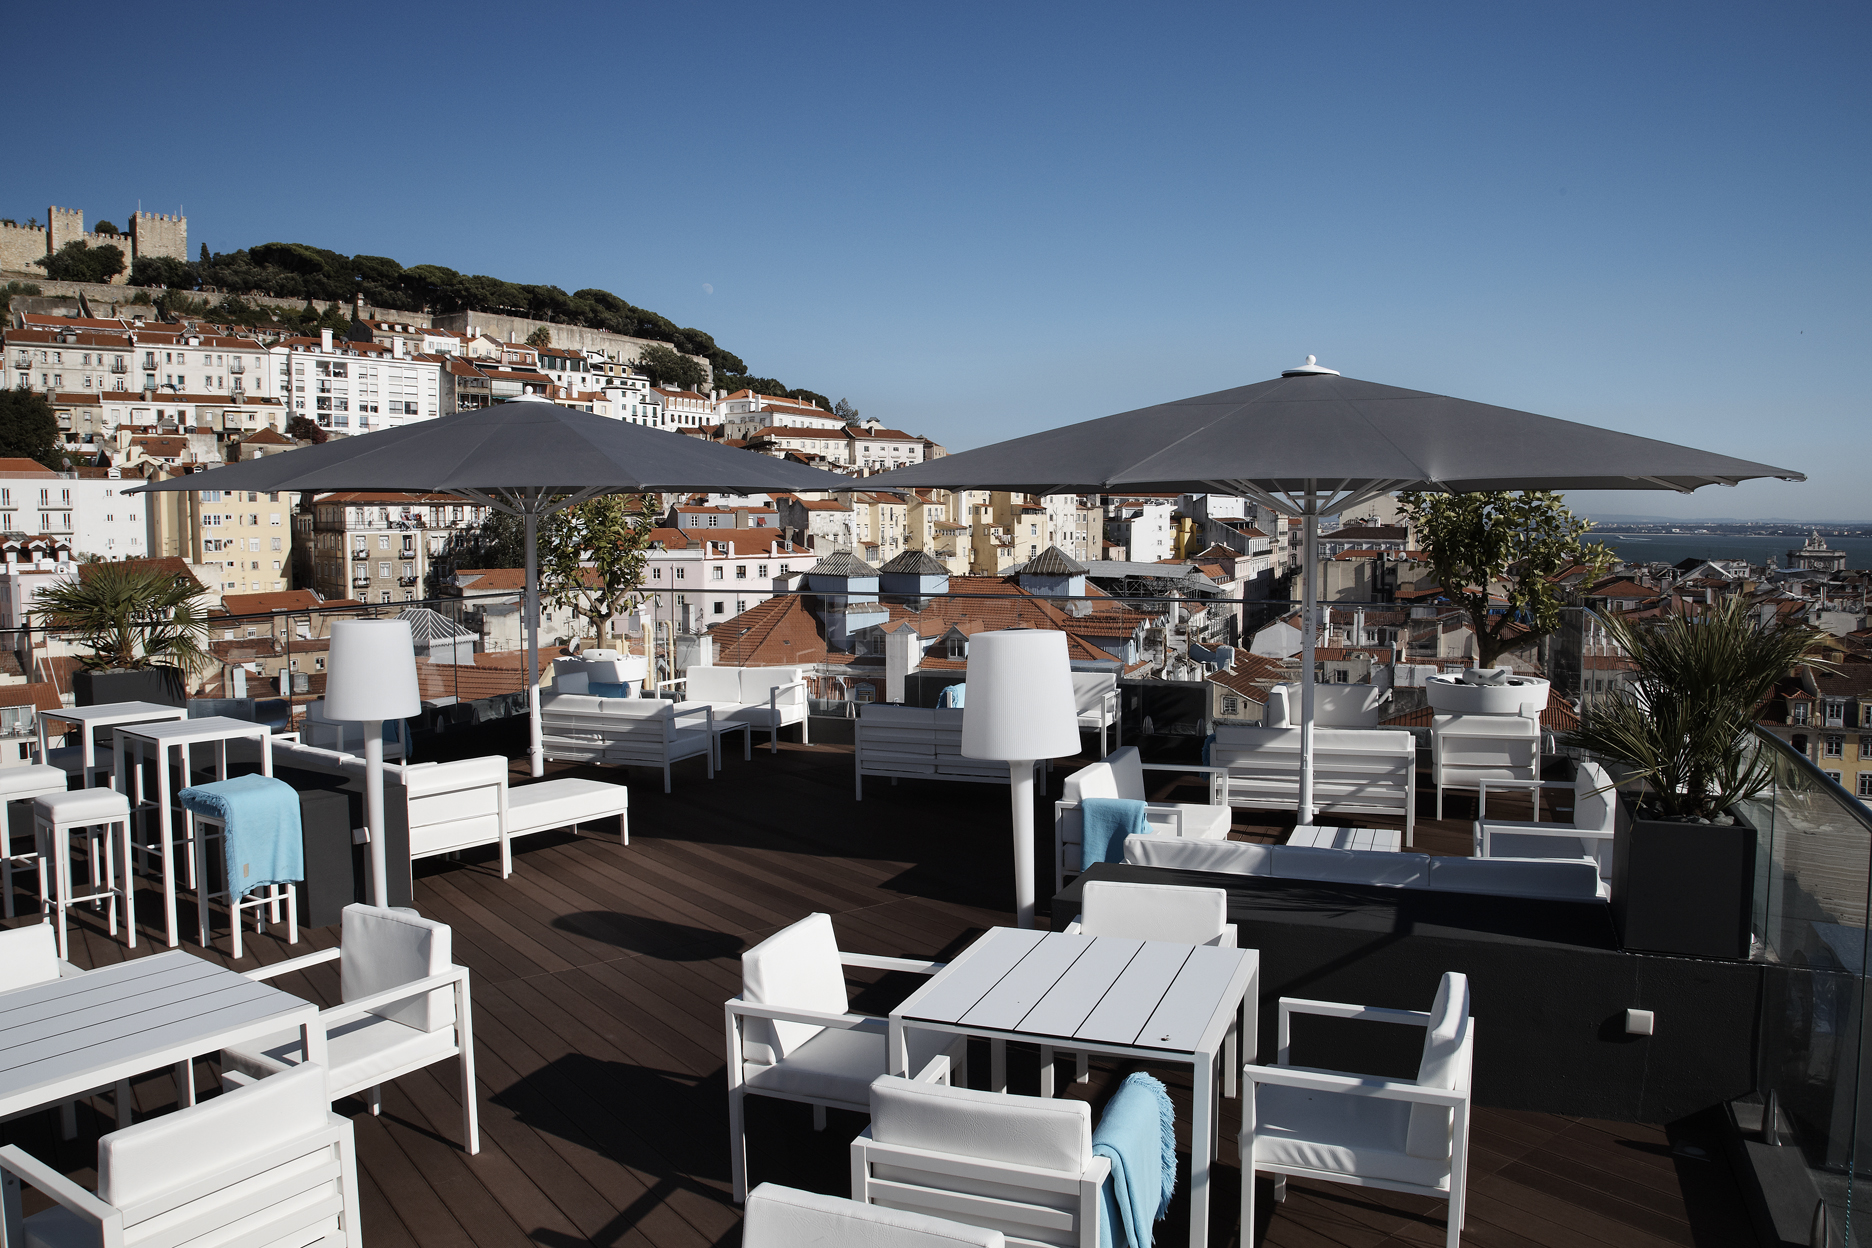 Hotel Tivoli Jardim Lisboa Fotos Lisbons Best Rooftops For Awe Inspiring Panoramic Views